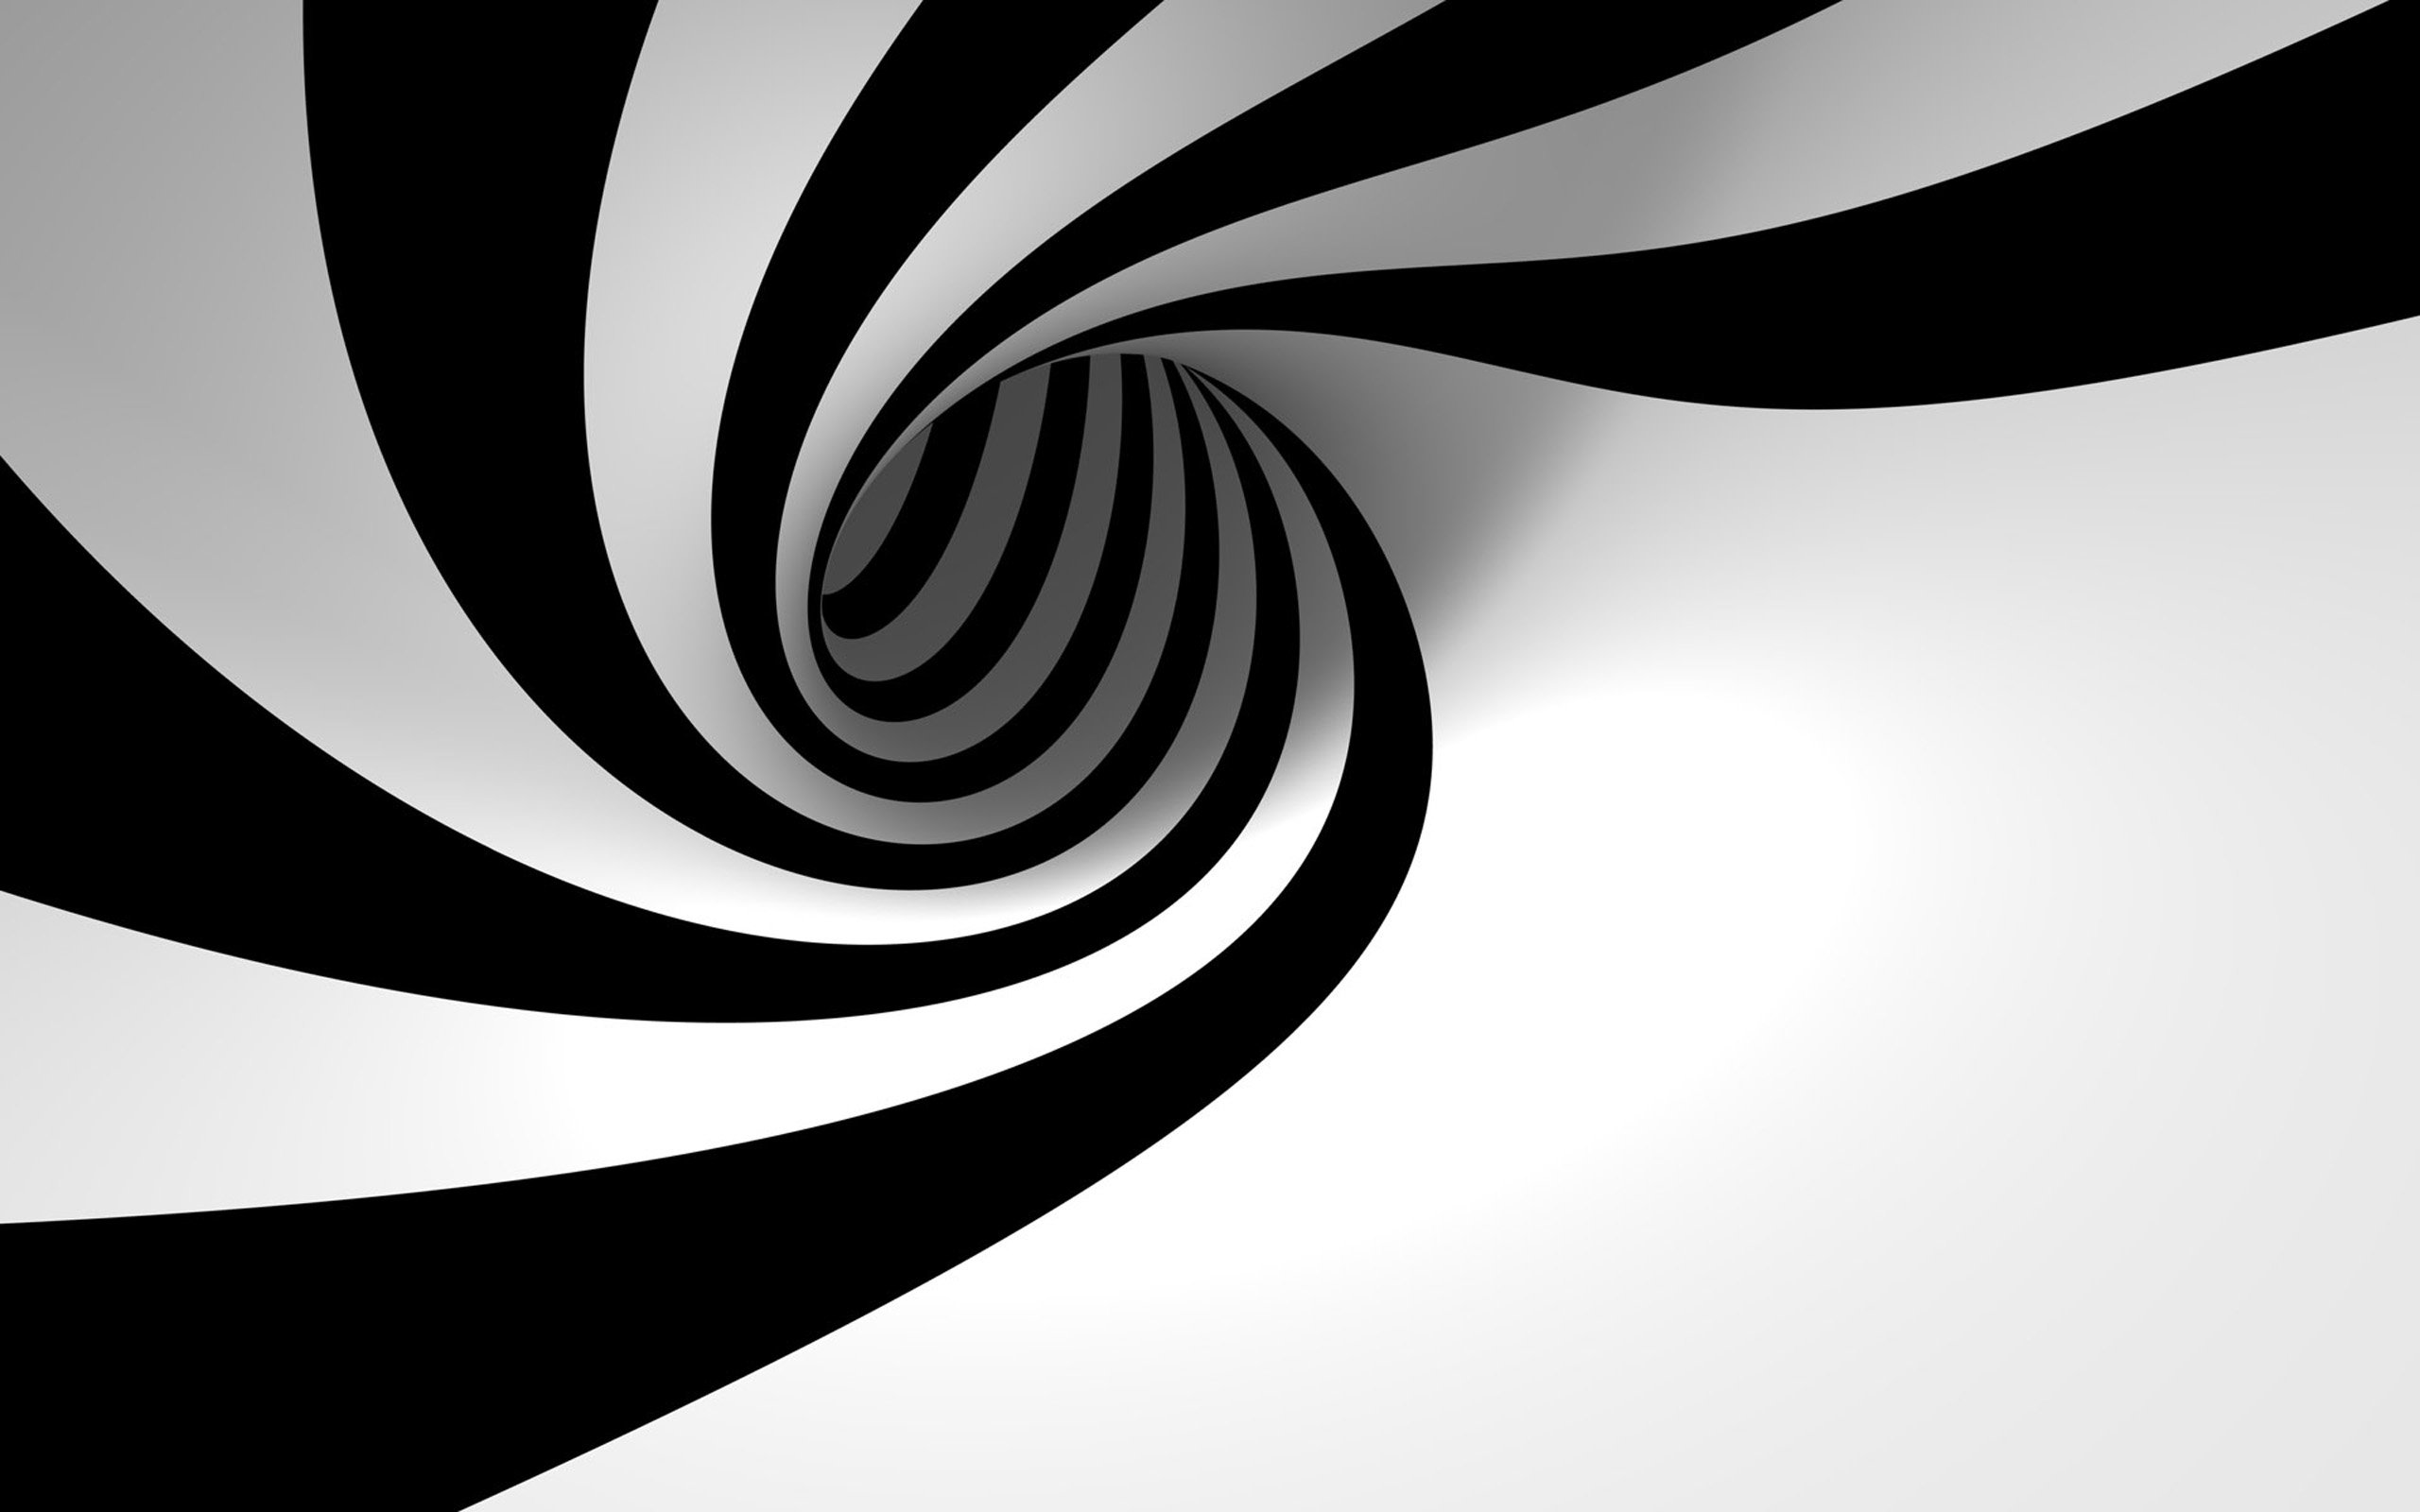 Download for an abstract black and white wallpaper background 2560x1600